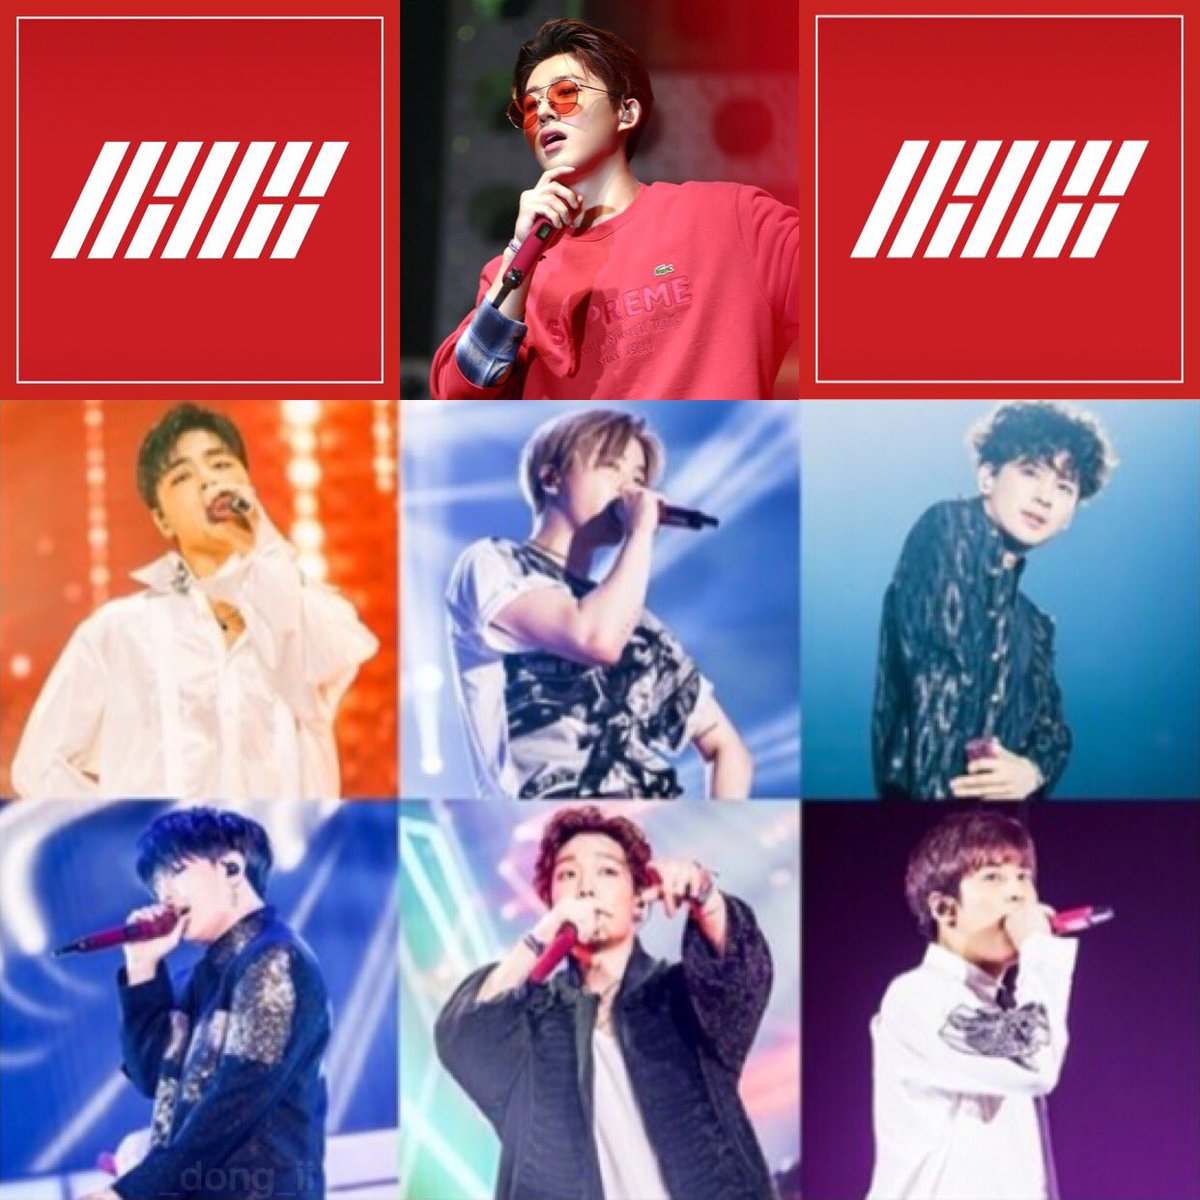 I was never here in the beginning but I promise to stay until the end. You made me fall and no one, NO ONE can ever make me leave this group nor this fandom. Cheers to more years!  #4EverWith7KON #Hanbin1nOnly #hanbinisworththewait <br>http://pic.twitter.com/w9UPahviZC